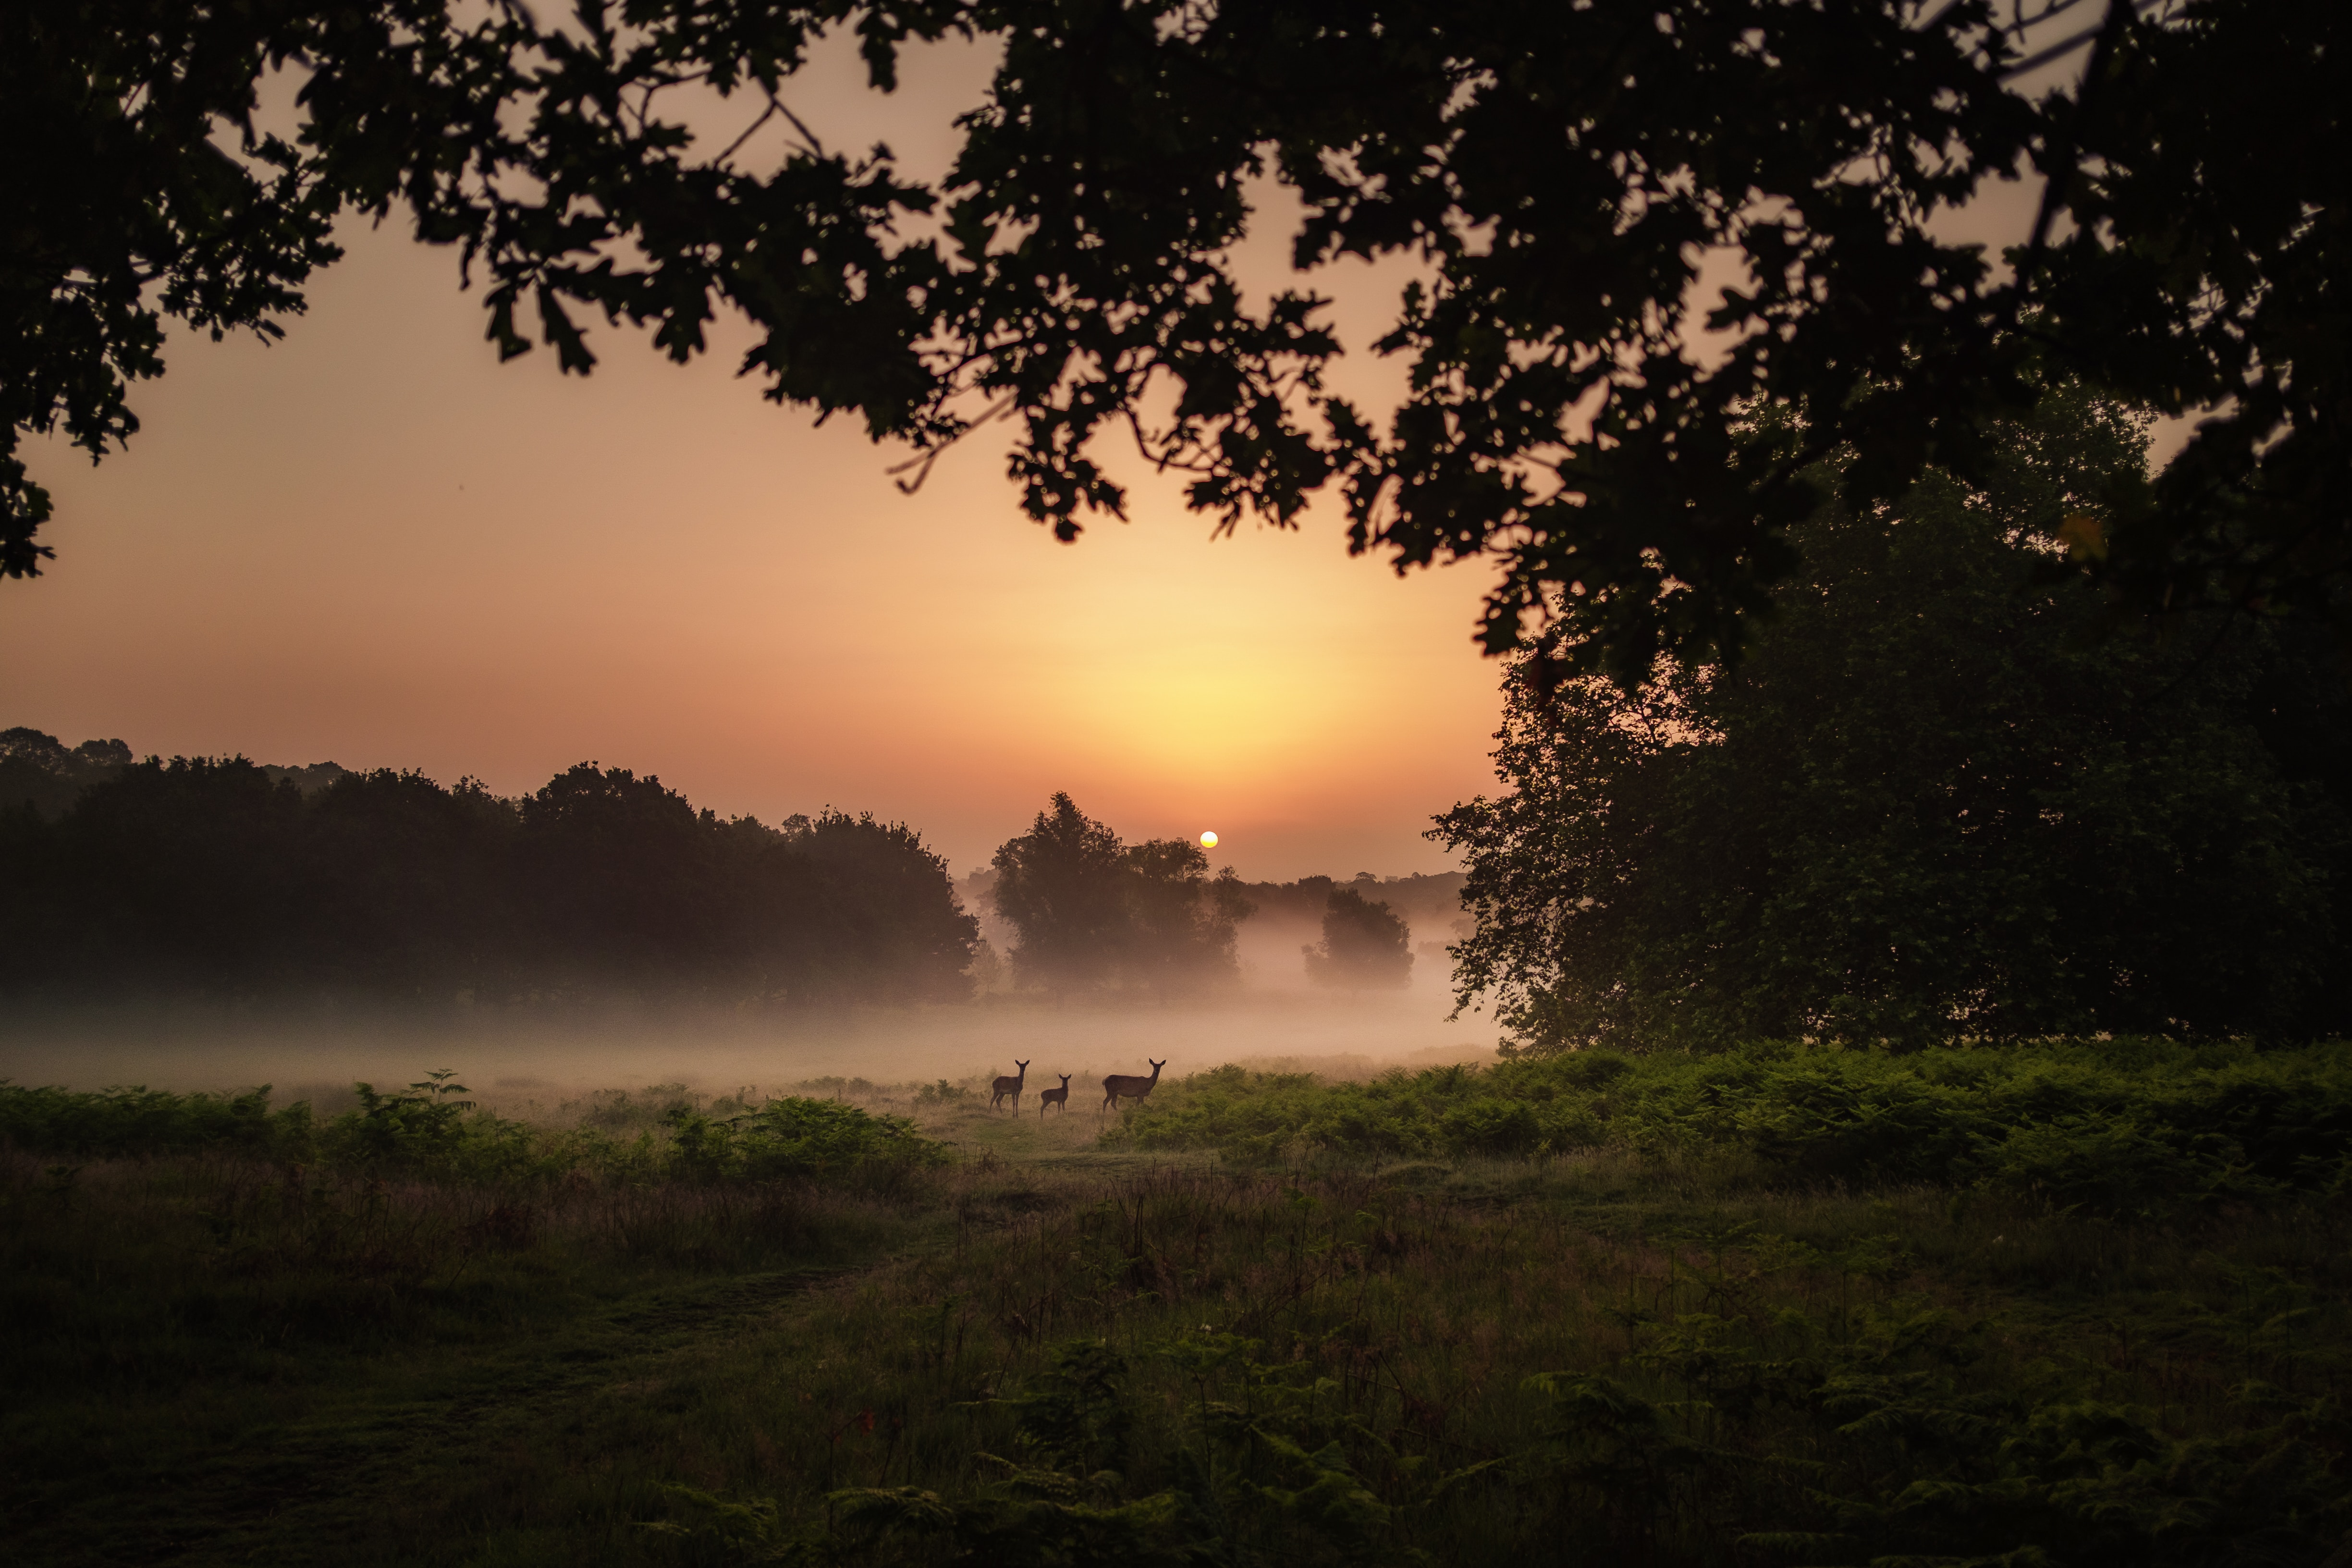 120110 download wallpaper Deers, Fog, Sunset, Dusk, Twilight, Nature screensavers and pictures for free